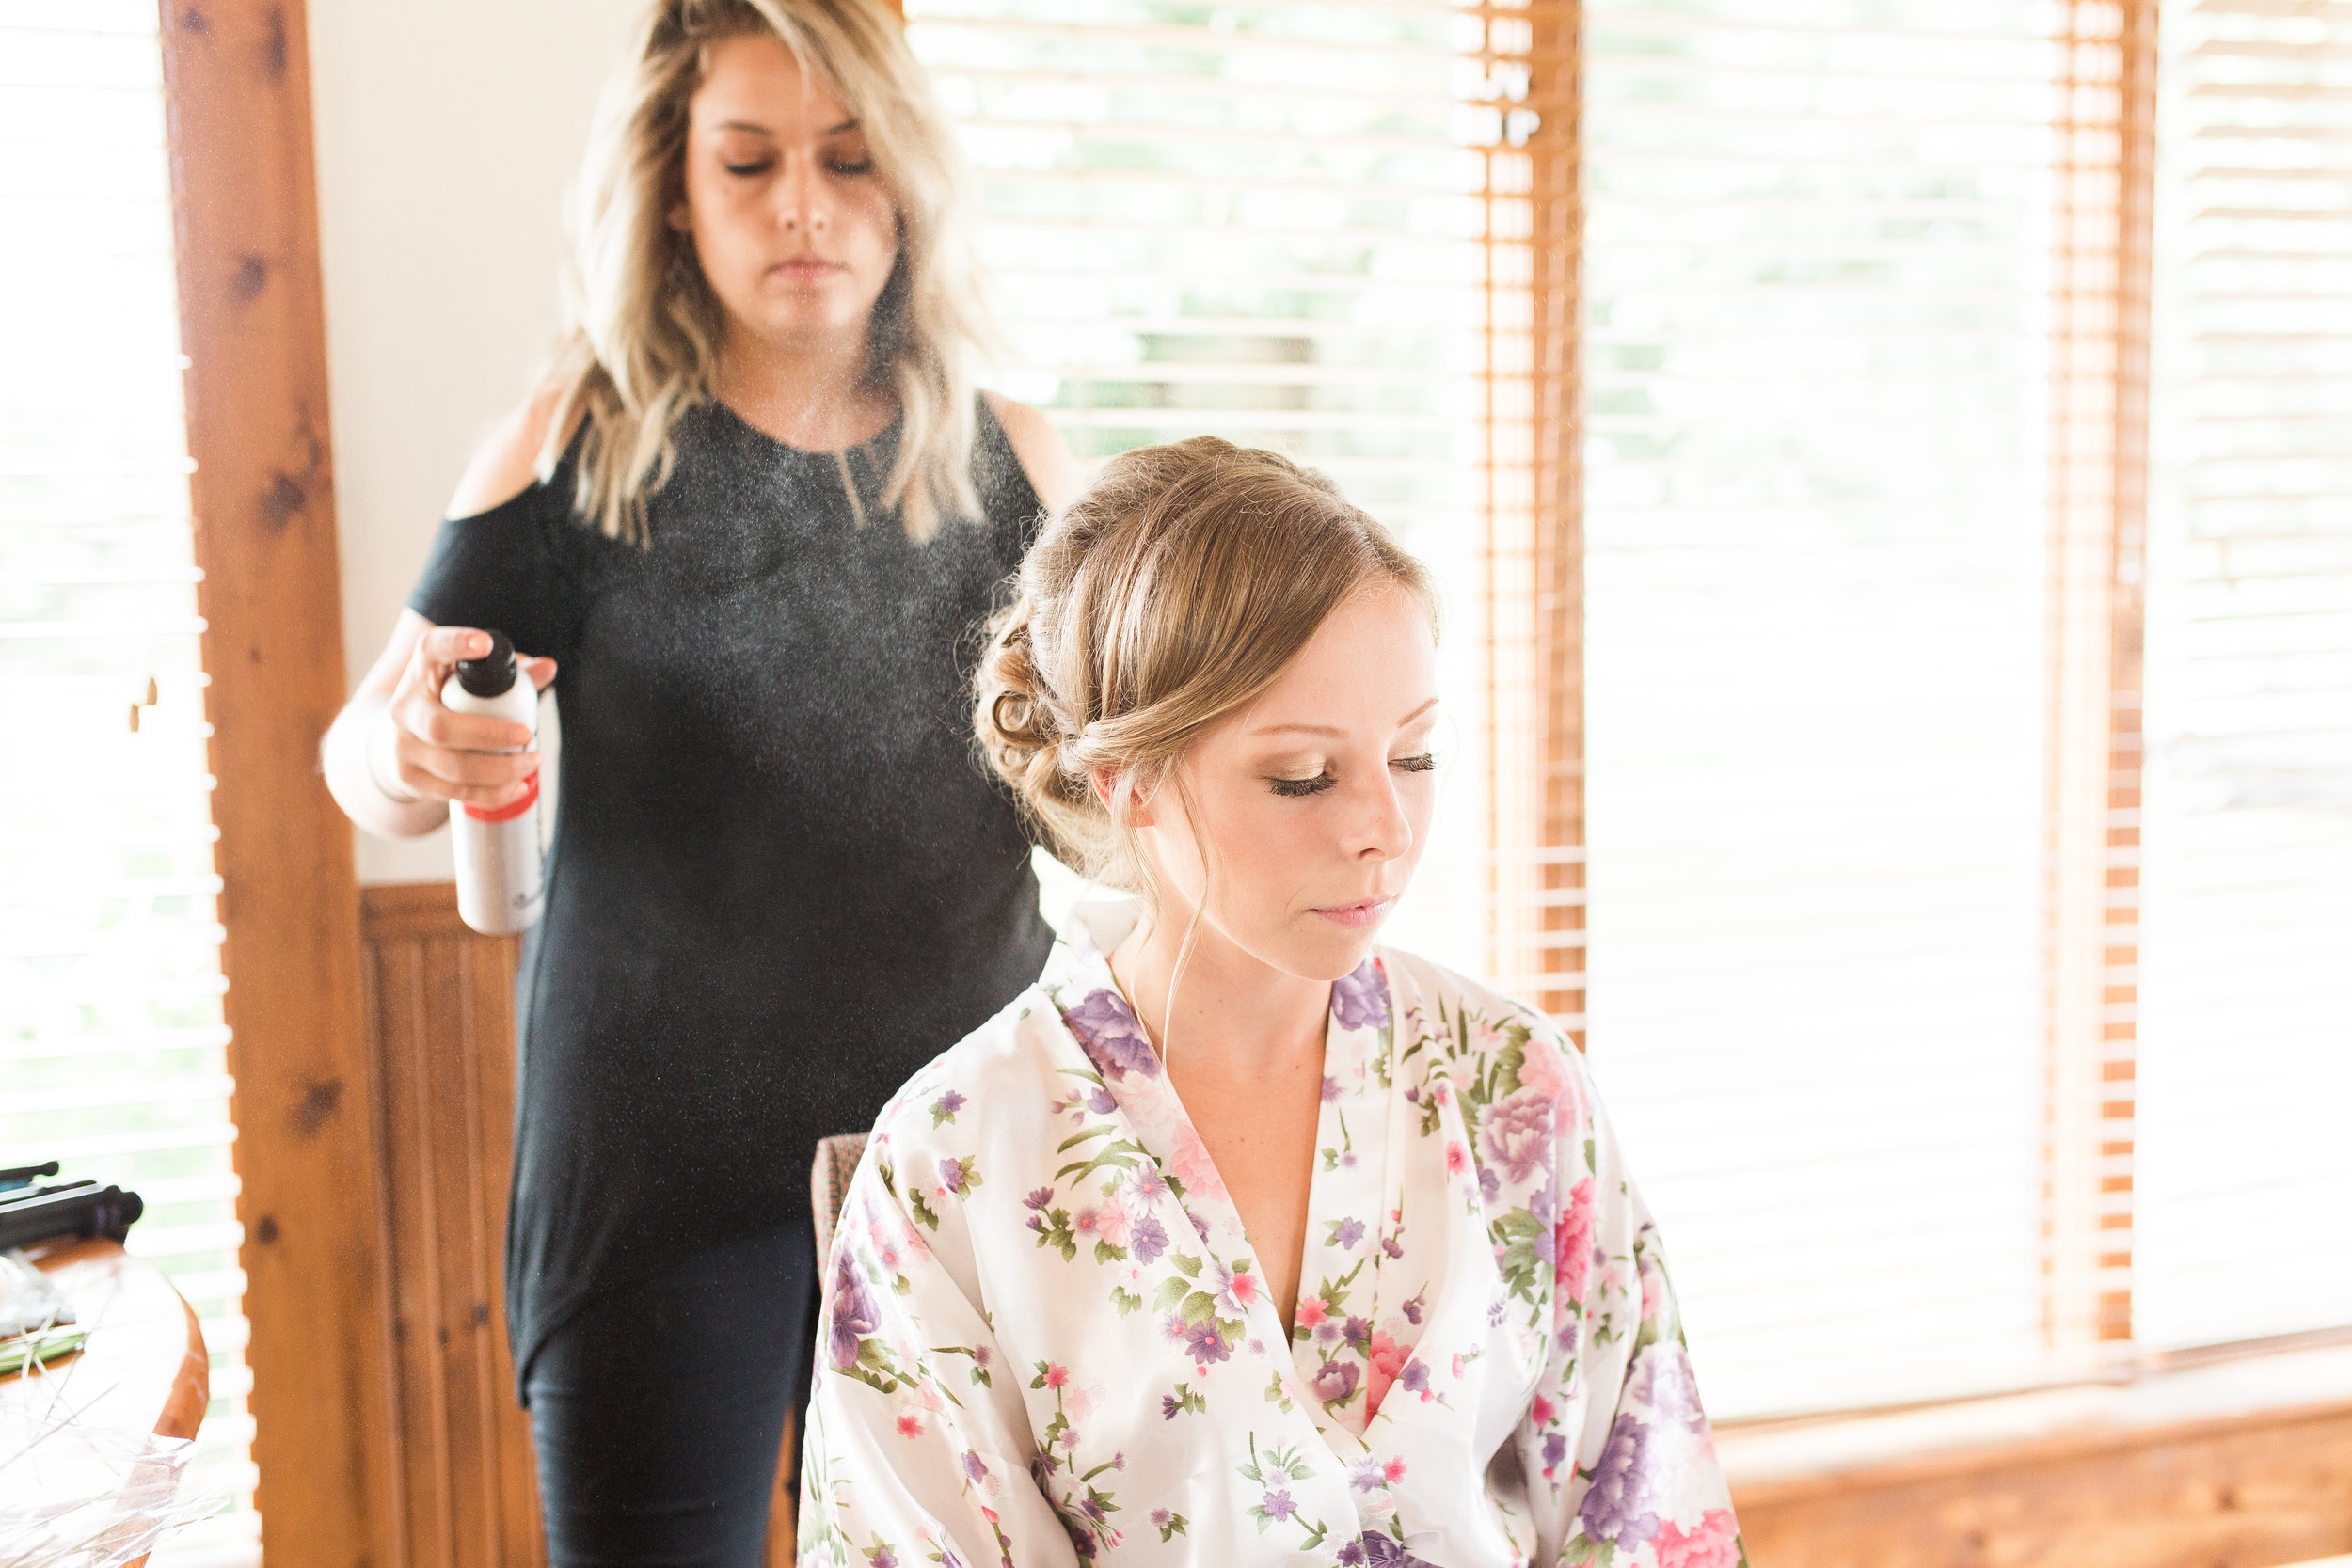 getting ready-warnsholz wedding-janelle elaine-9.jpg